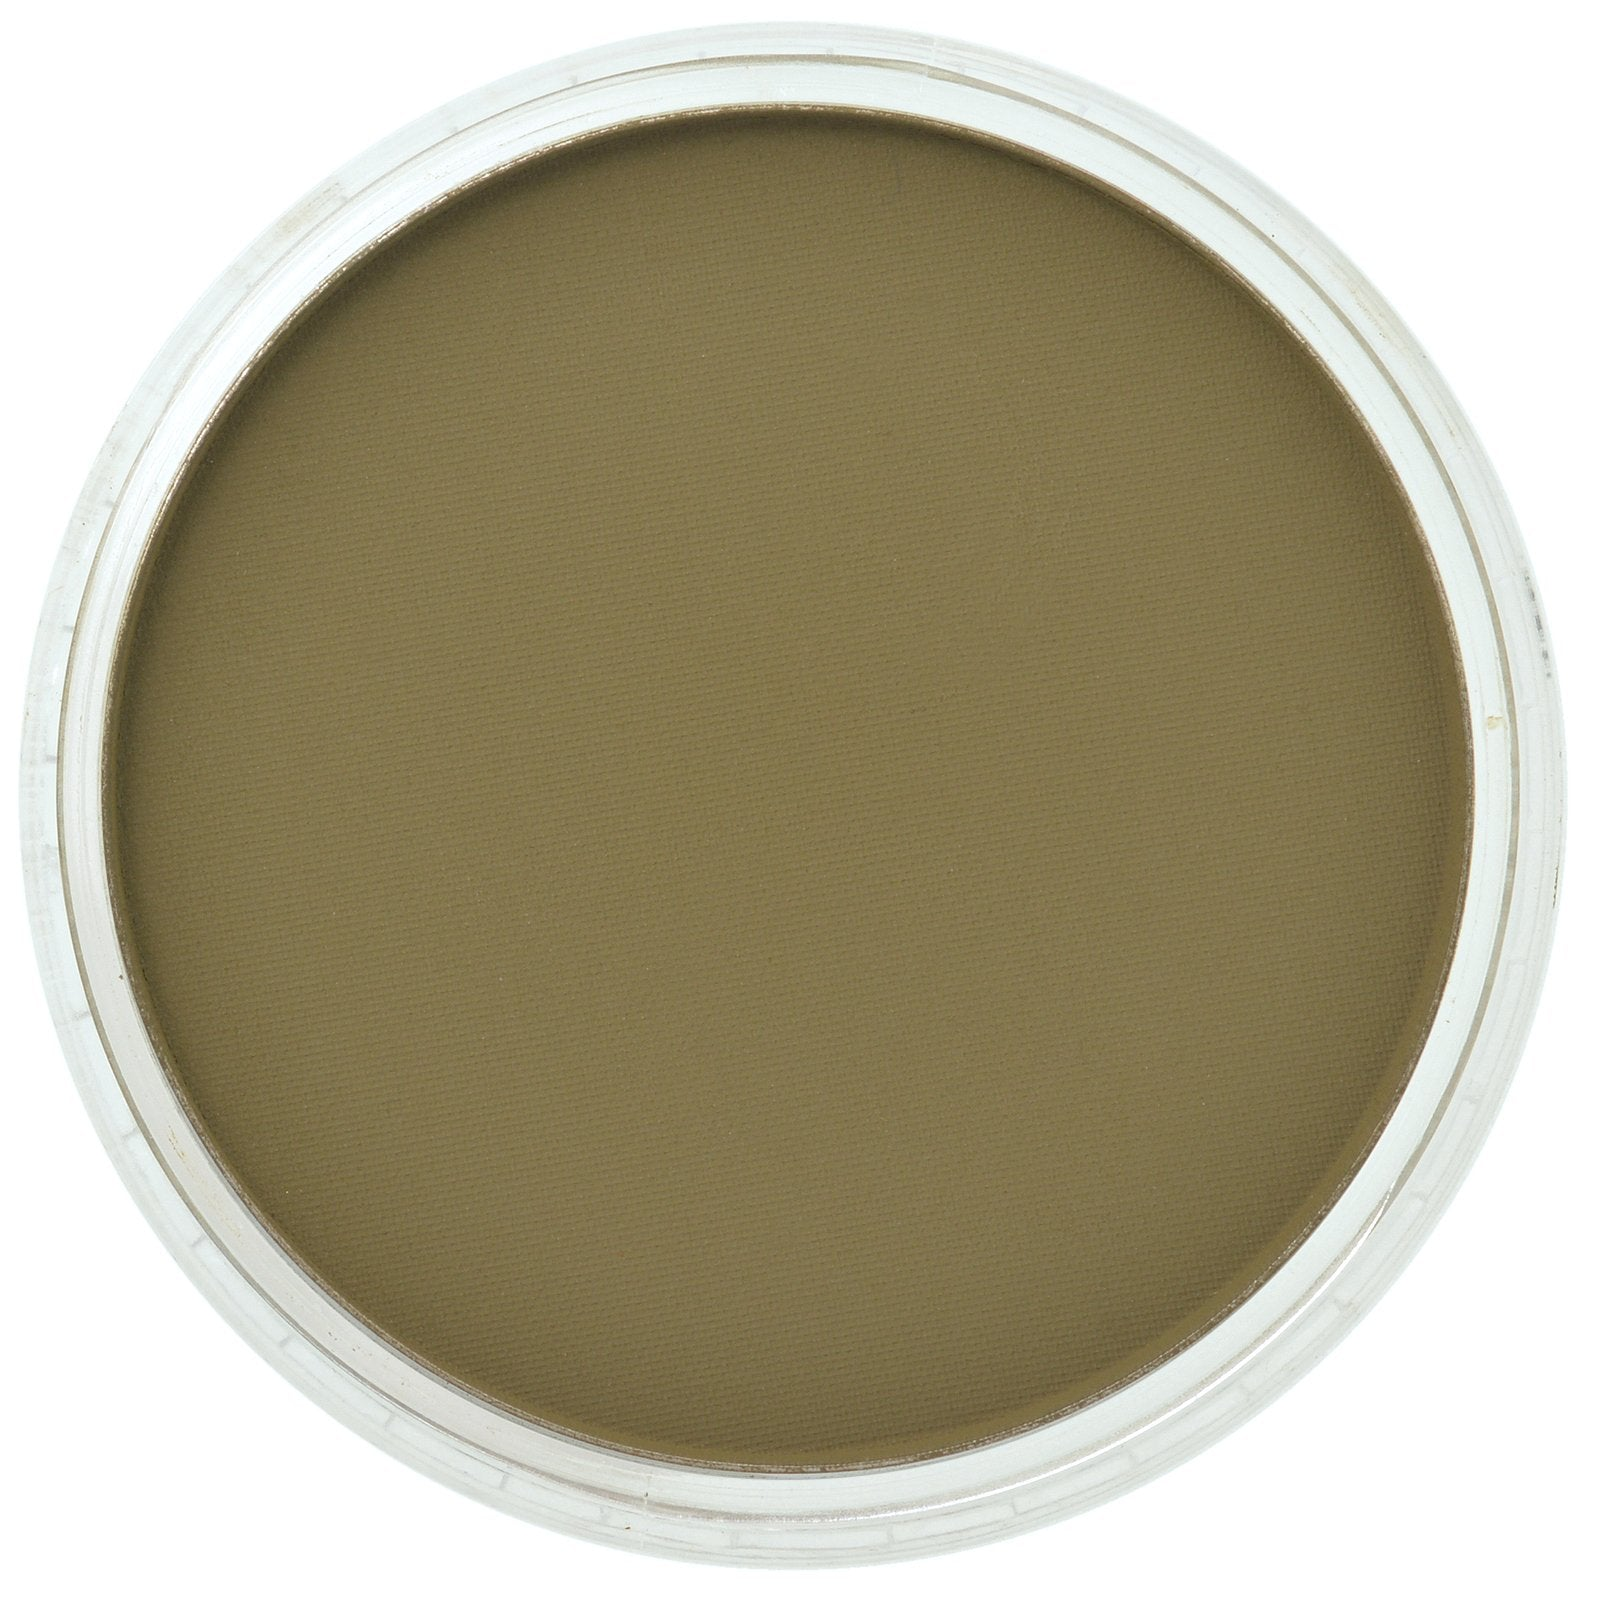 PanPastel - 270.1 YELLOW OCHRE EXTRA DARK